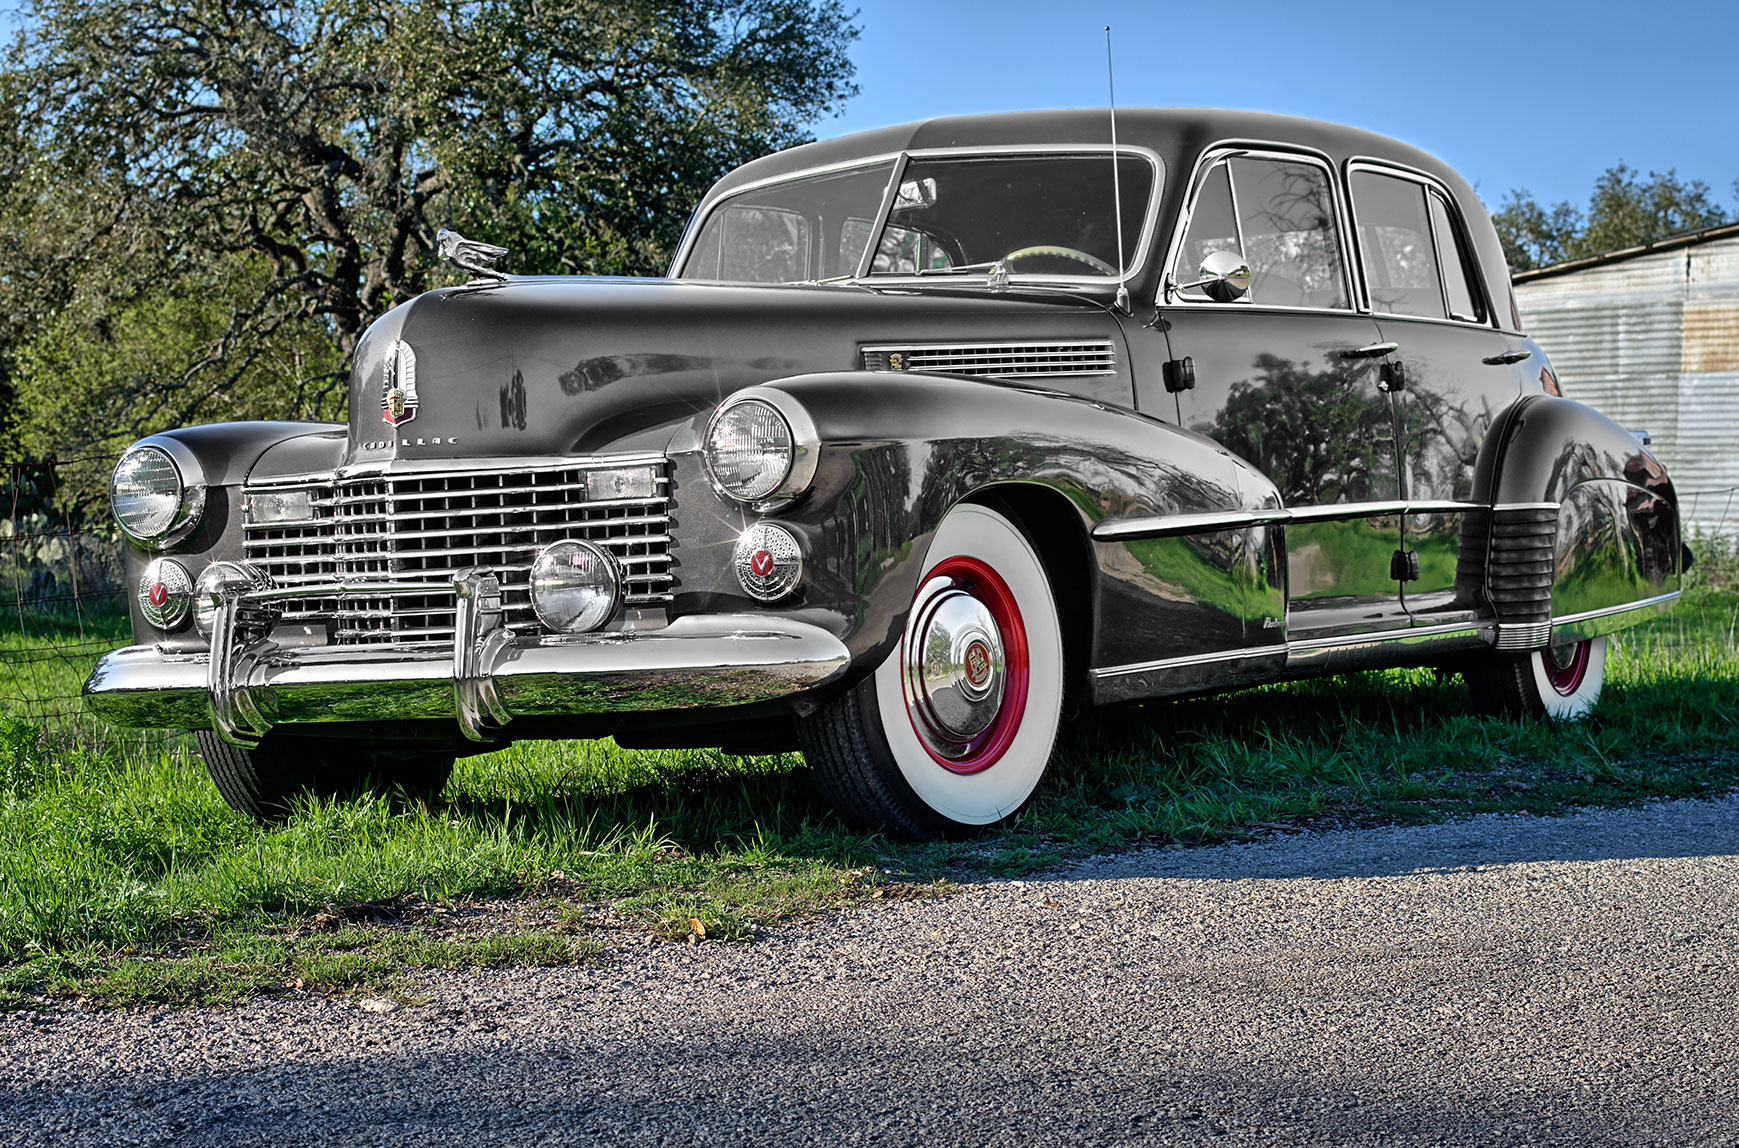 This car embodies the elegance and luxury of times past.